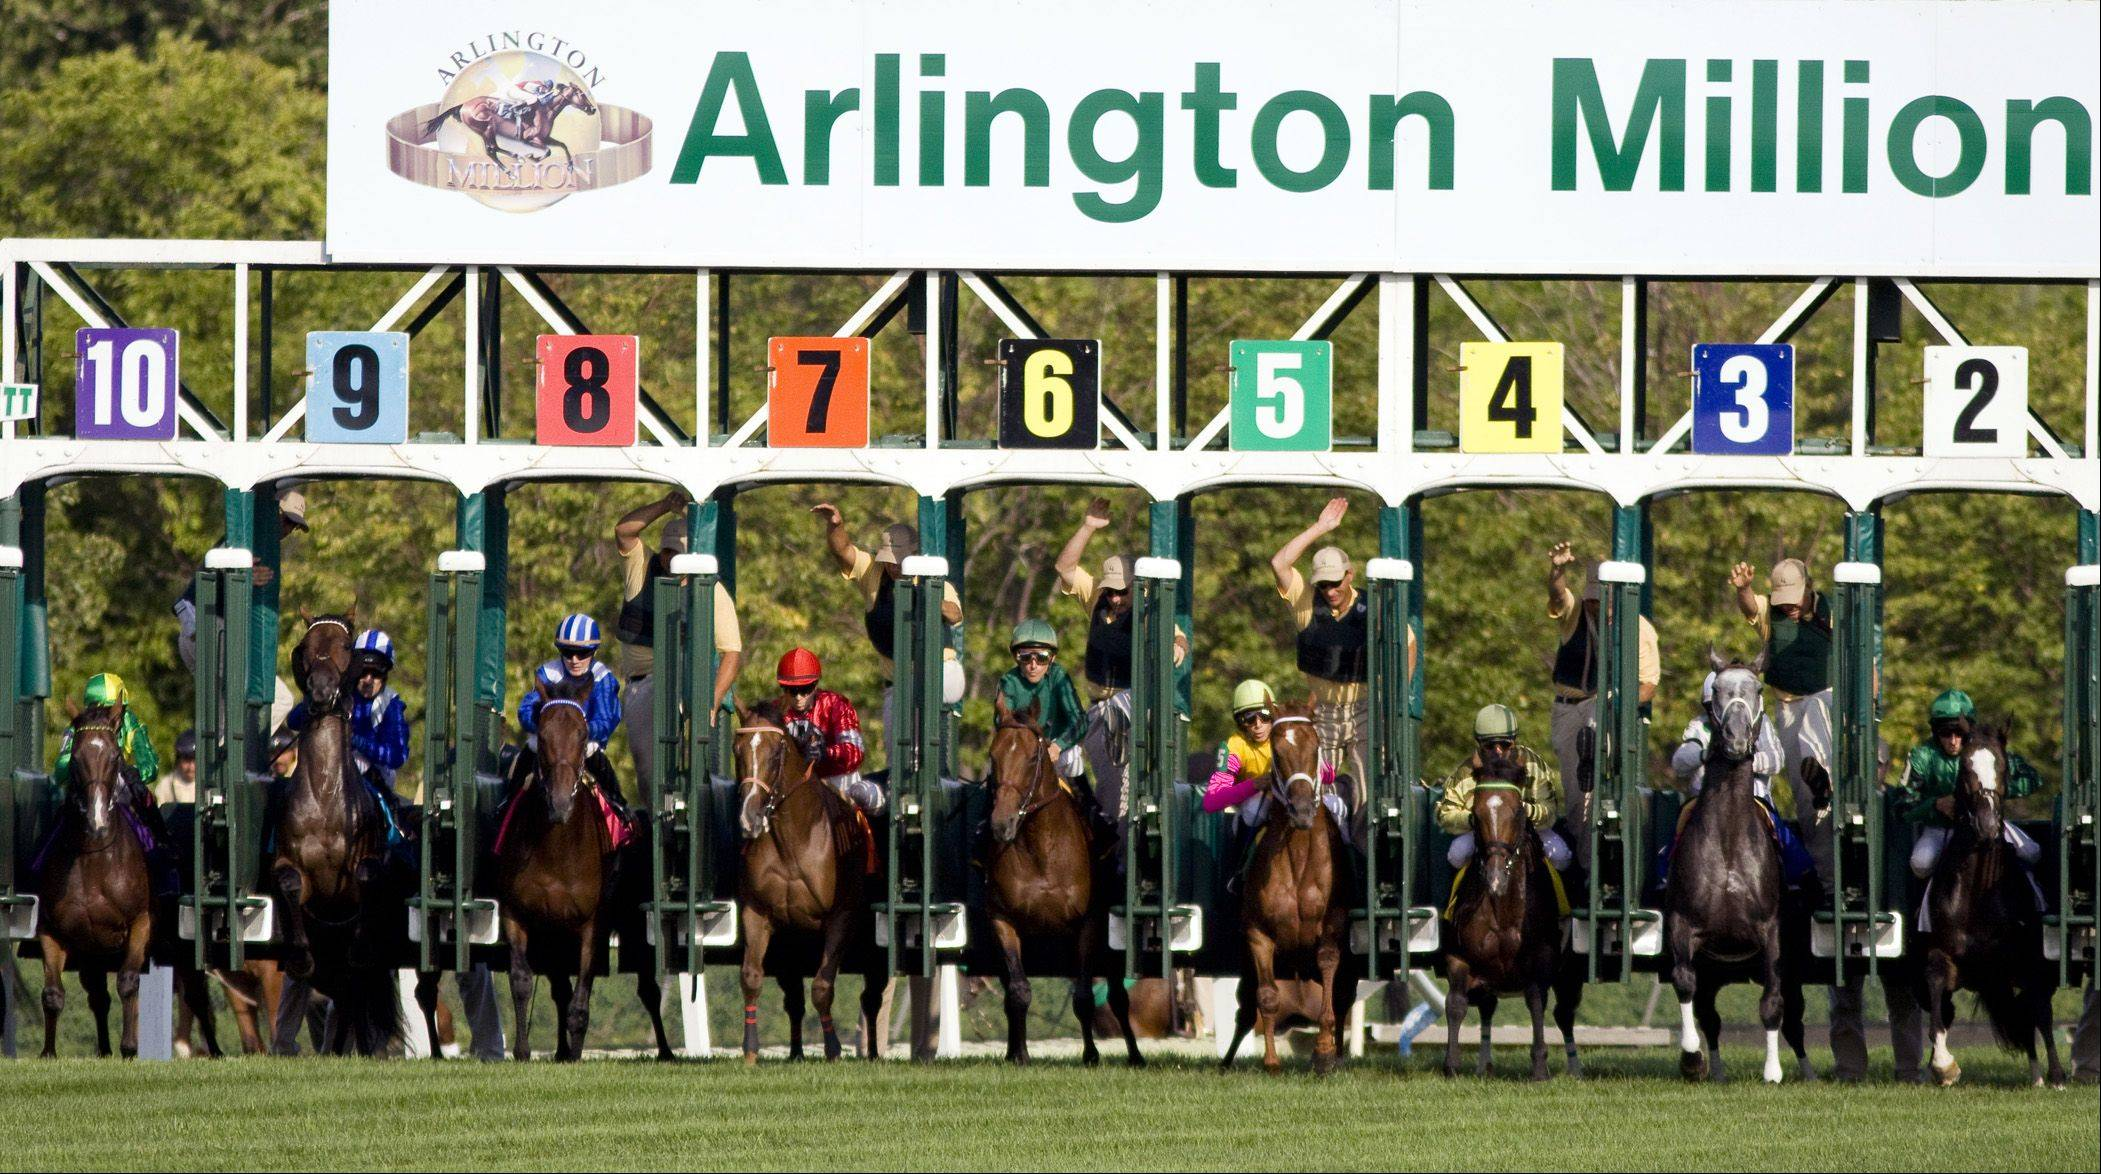 Photo courtesy of FourFootedFotos �It's not Million Day, but it's the next best thing when Arlington Park hosts Million Preview Day on Saturday